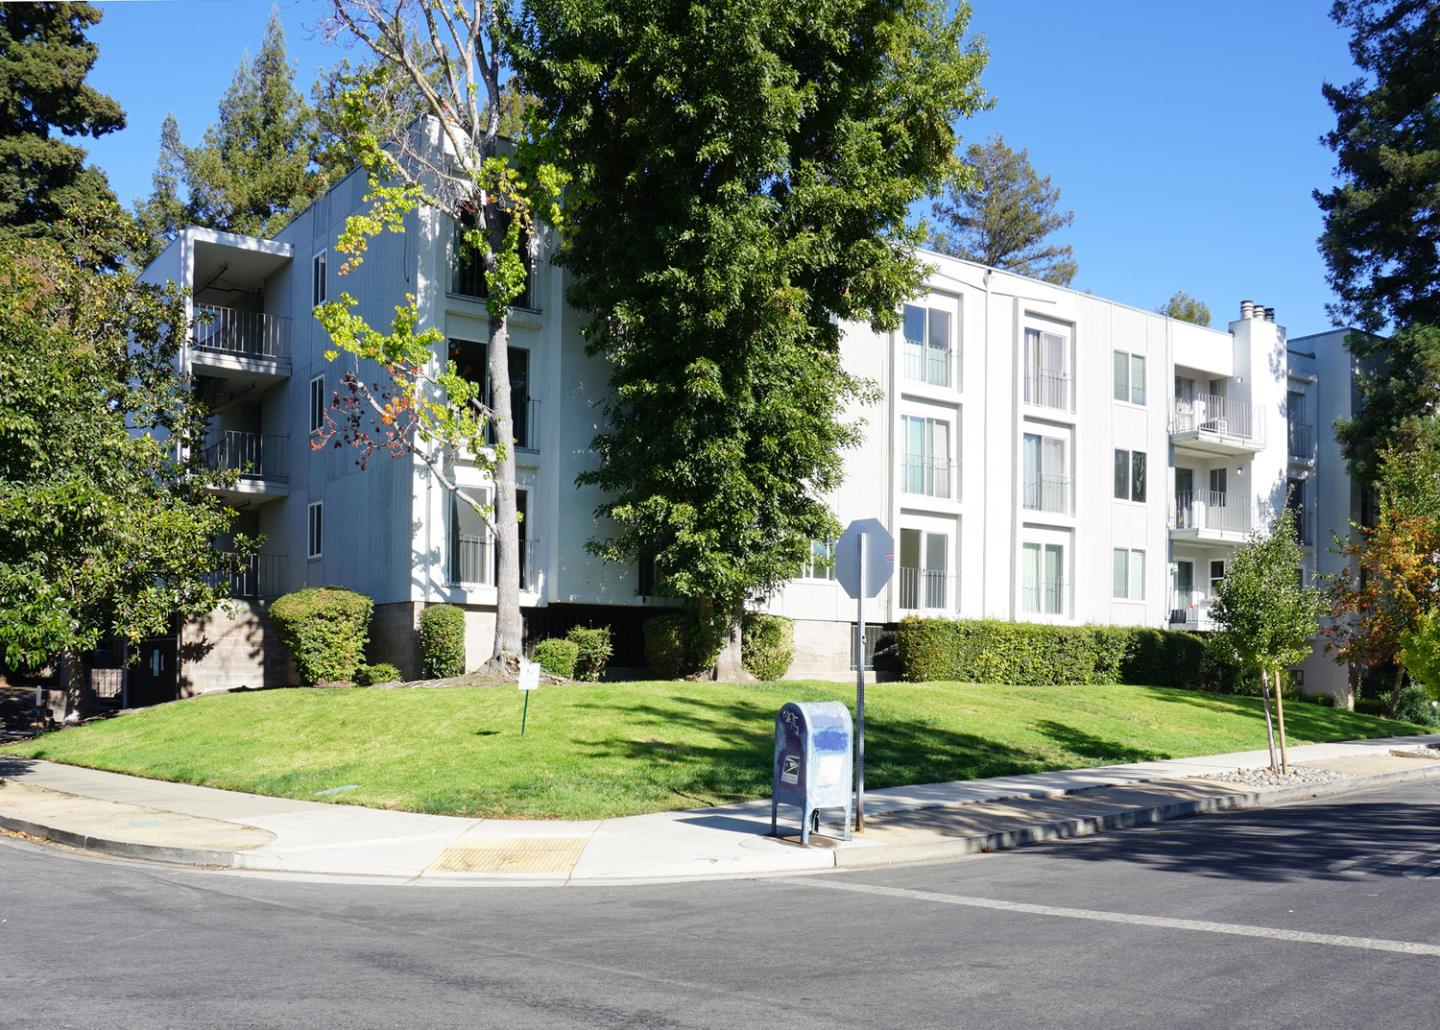 Westside Redwood City condo on a lovely picturesque tree-lined street close to El Camino, Freeways, Transportation, Shopping and more.  First floor unit with an assigned parking space next to lobby entrance where you can take the stairs or newly remodeled elevator to your first floor unit just steps away.  Fully equipped kitchen with double ovens, stainless steel refrigerator, dishwasher and microwave and breakfast bar.  Spacious open living room/dining room with cozy gas fireplace. Stacking Washer/Dryer inside unit. Master Suite is very spacious with walk-in closet and built-in linen closet. Swimming Pool recently upgraded for fun in the sun!